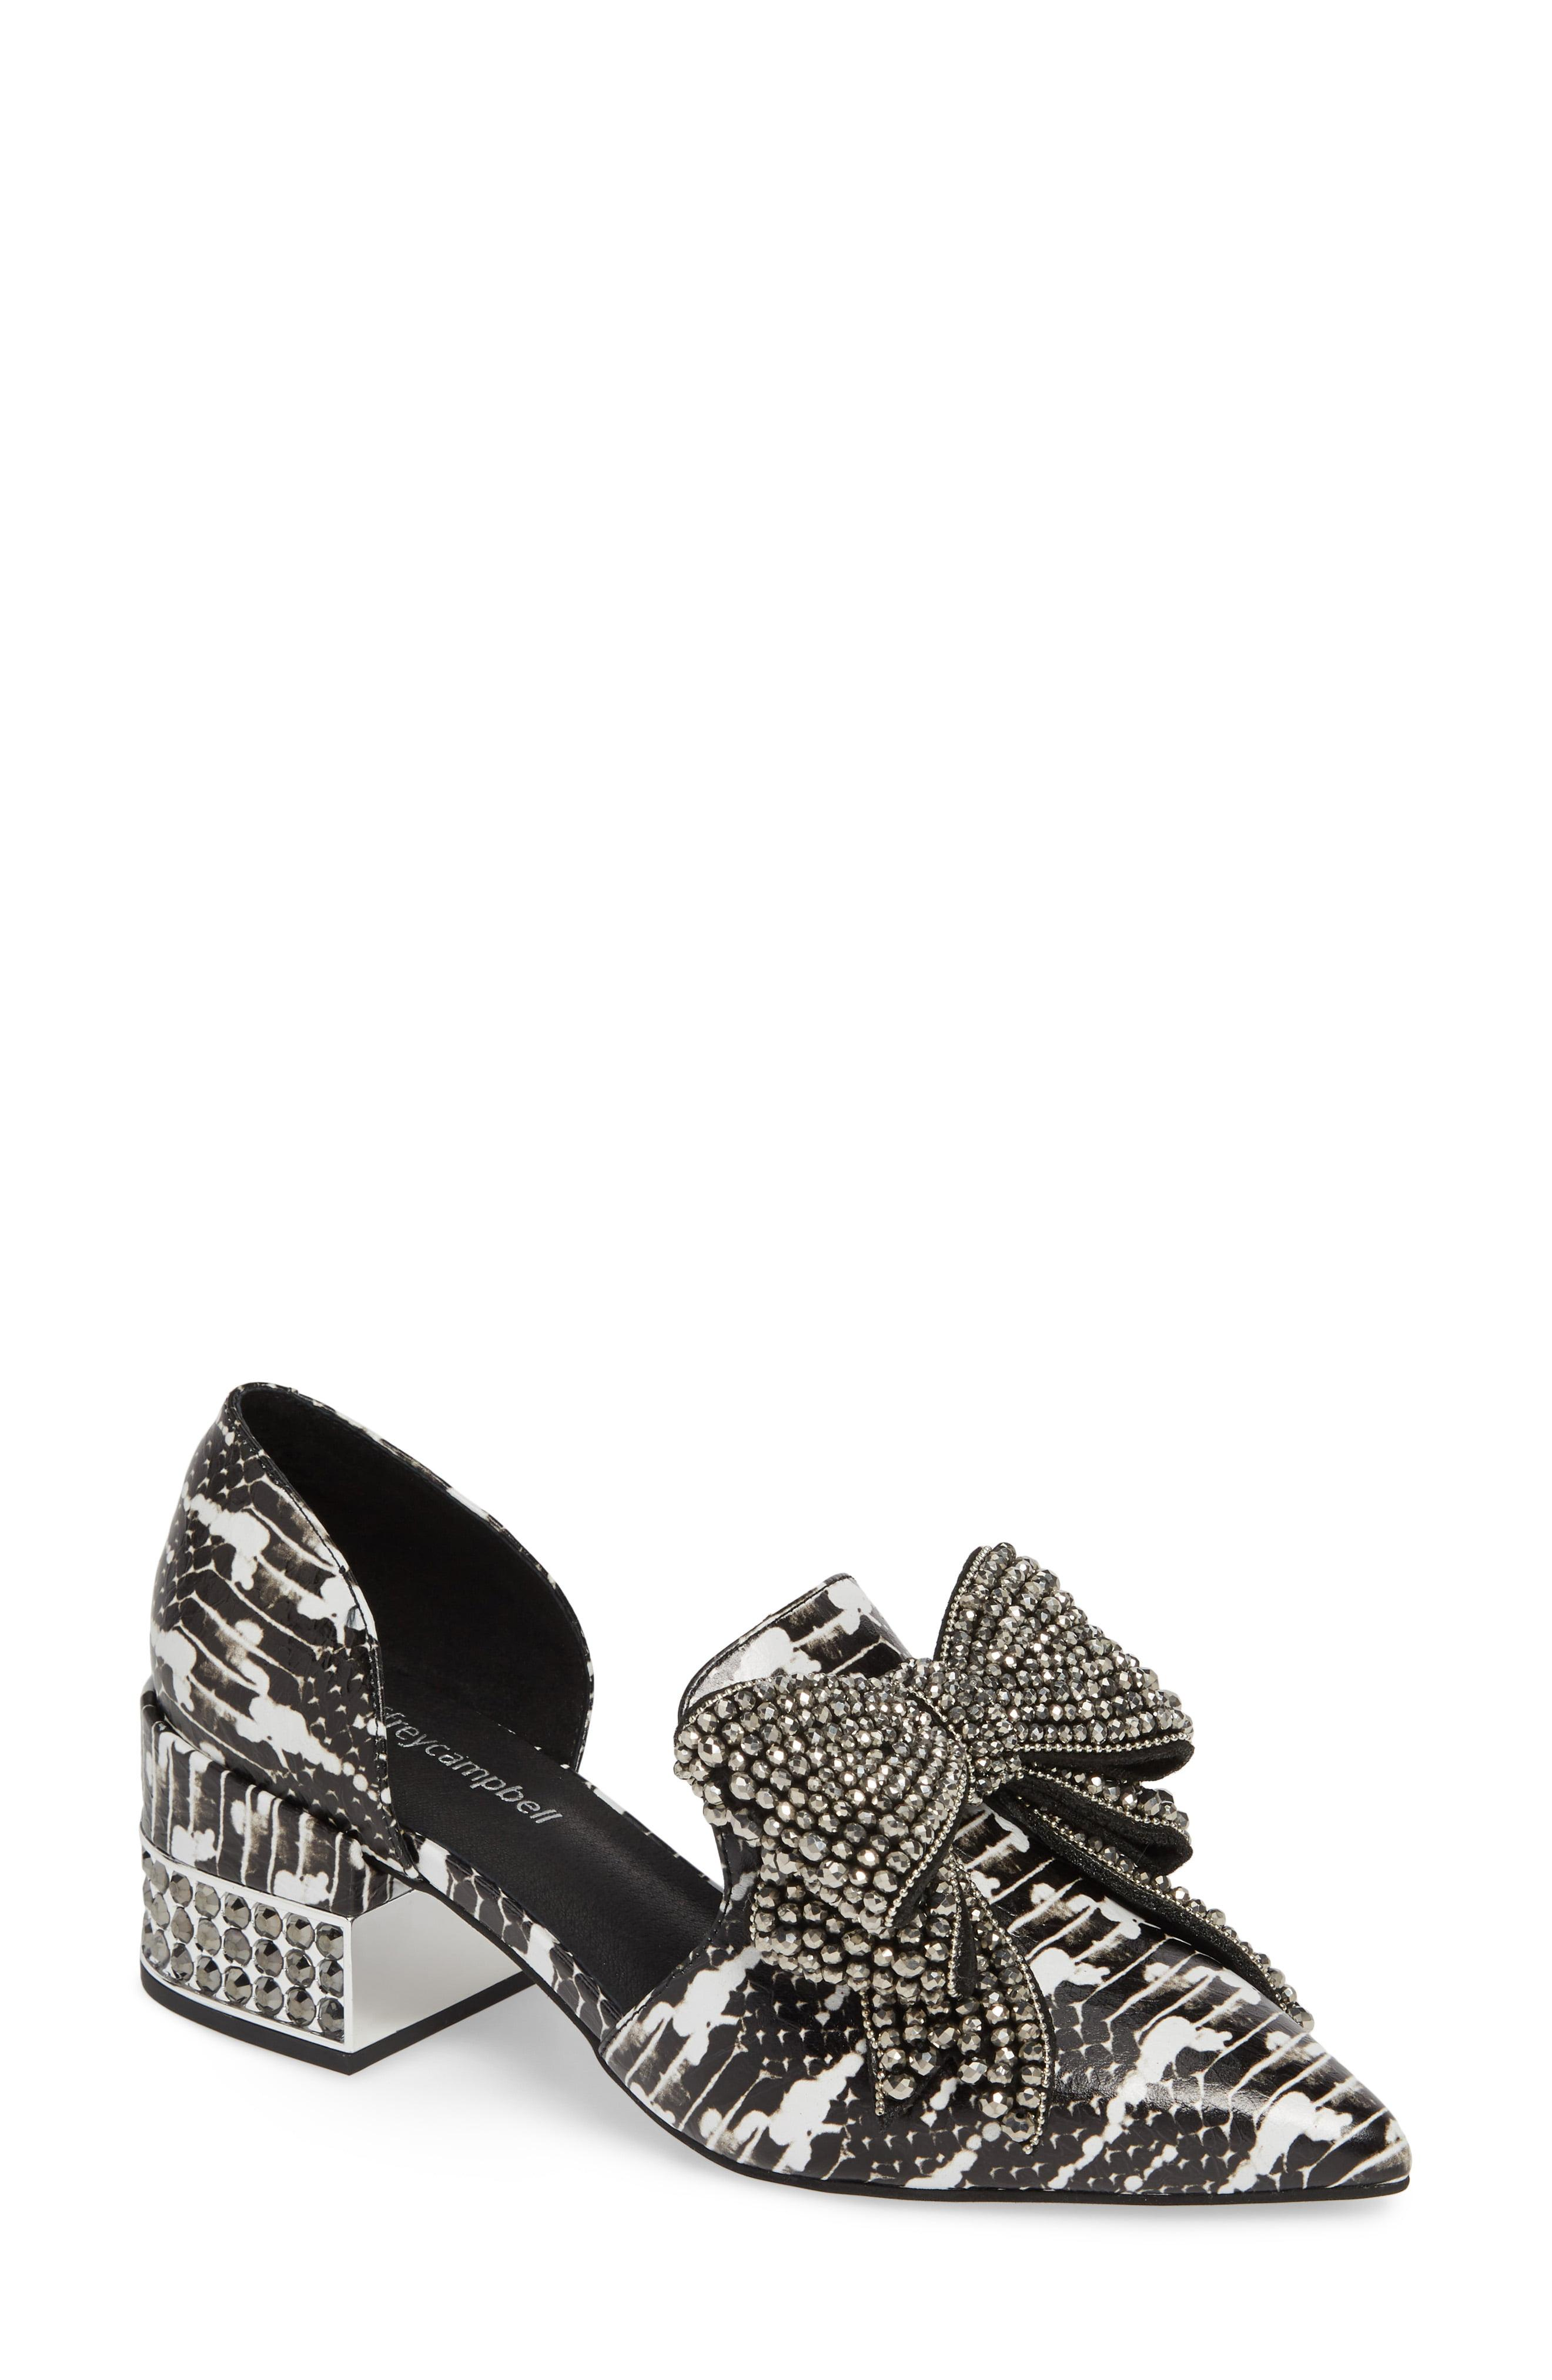 29404d79bf8 Lyst - Jeffrey Campbell Valenti Embellished Bow Loafer in Black ...